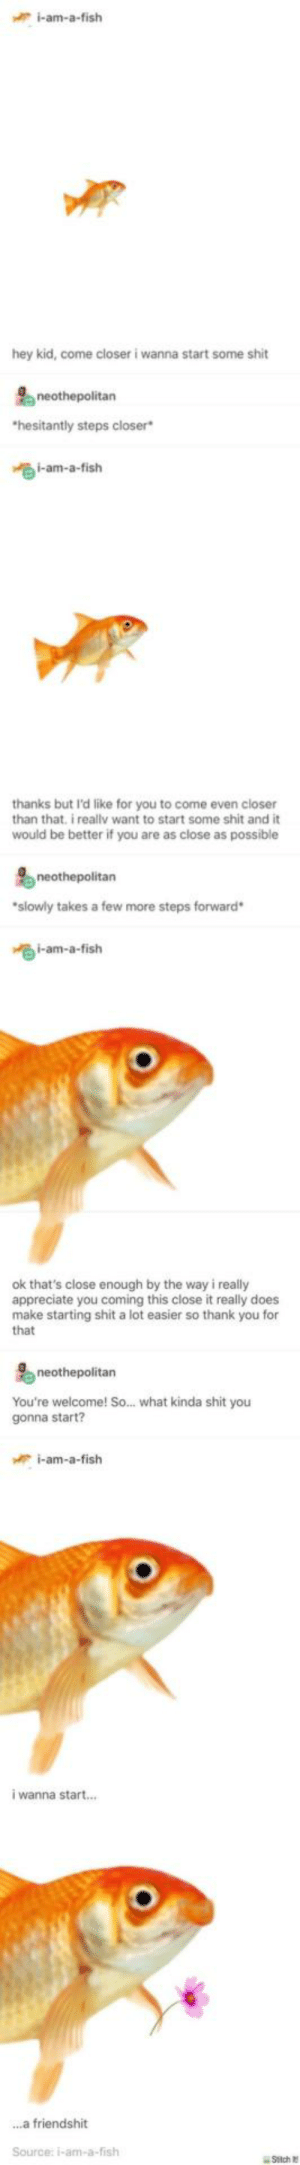 Shit, Thank You, and Appreciate: i-am-a-fish  hey kid, come closer i wanna start some shit  hesitantly steps closer  i-am-a-fish  thanks but I'd like for you to come even closer  than that. i reallv want to start some shit and it  would be better if you are as close as possible  neothepolitan  slowly takes a few more steps forward  i-am-a-fish  ok that's close enough by the way i really  appreciate you coming this close it really does  make starting shit a lot easier so thank you for  that  neothepolitan  You're welcome! So... what kinda shit you  gonna start?  i-am-a-fish  i wanna start..  ...a friendshit  Source: i-am-a-fish lil fish friend